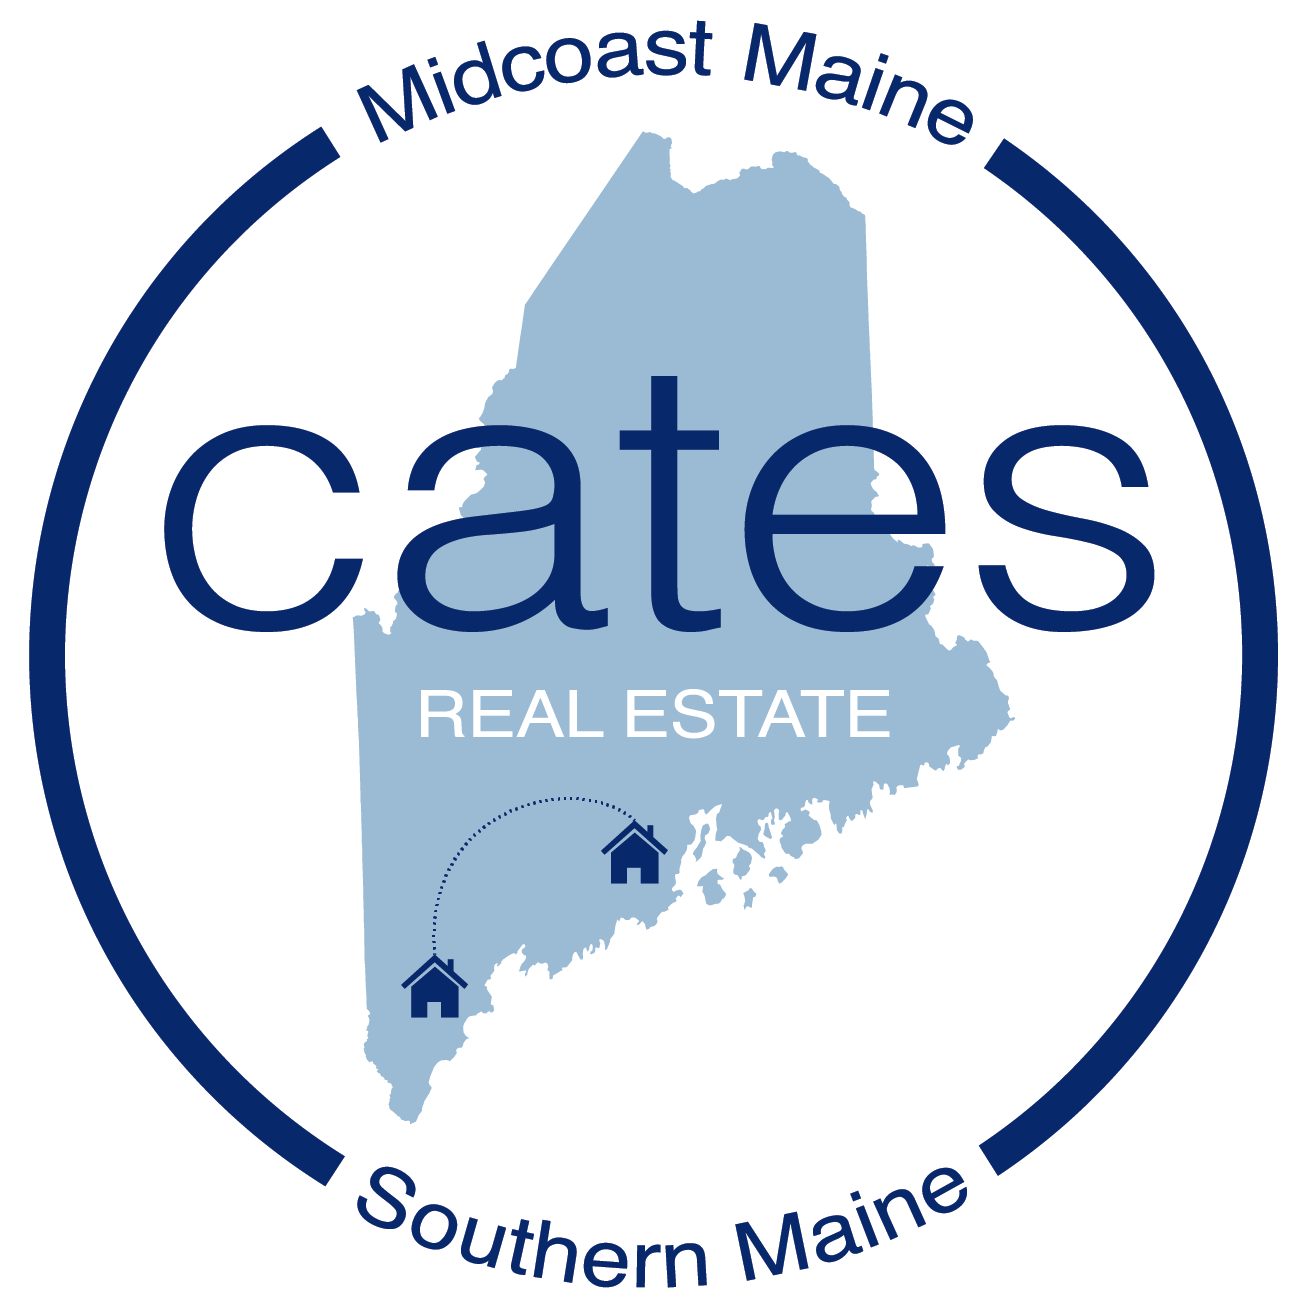 Cates Real Estate